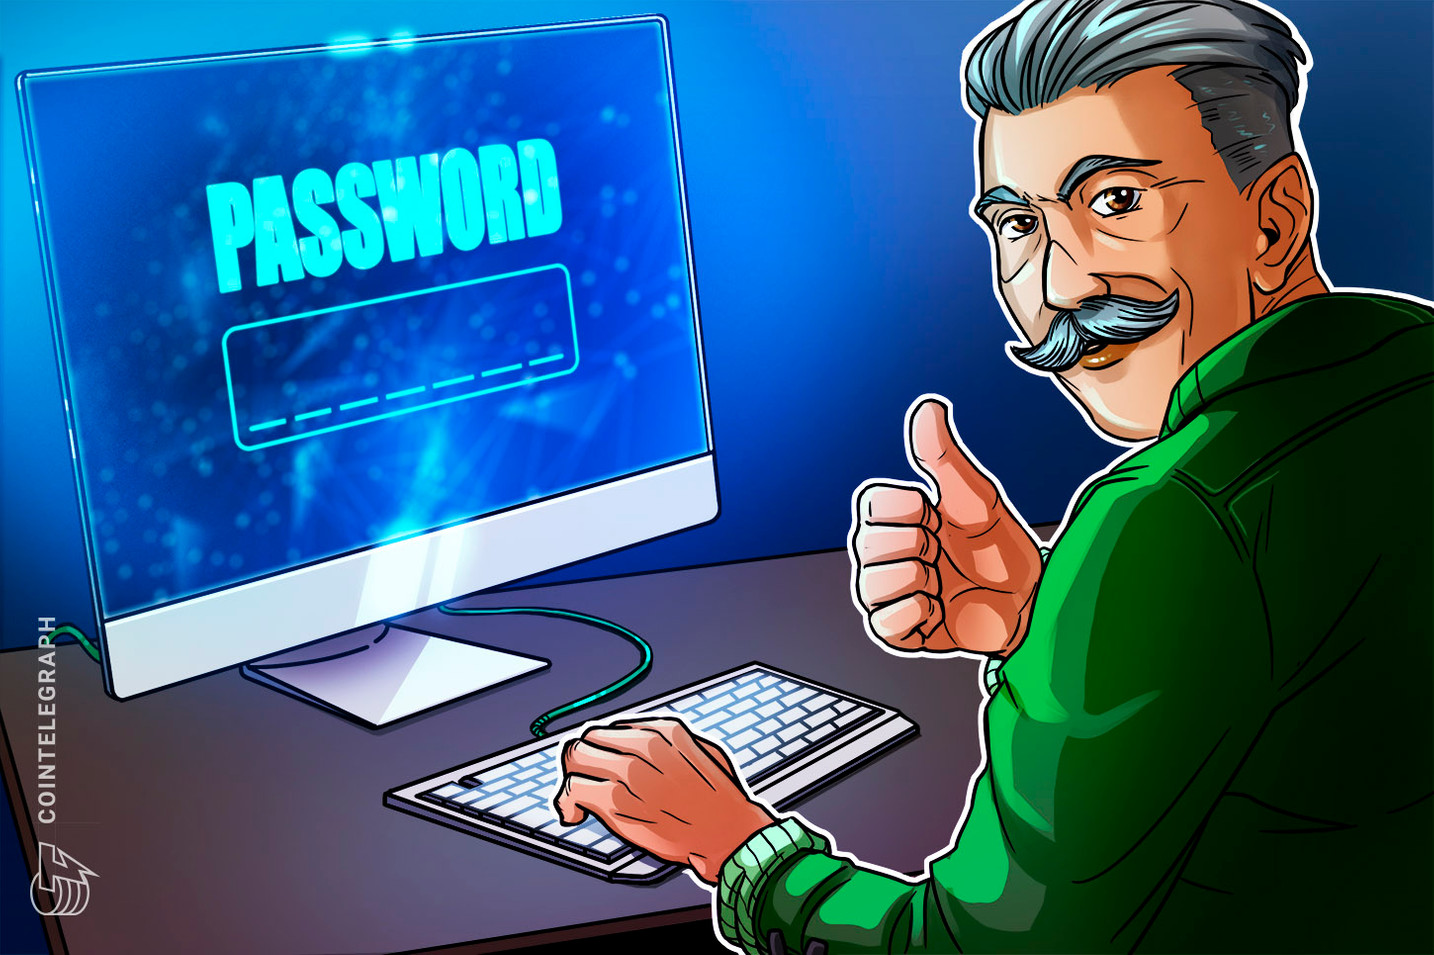 Programmer has two password guesses left before losing $266M in Bitcoin